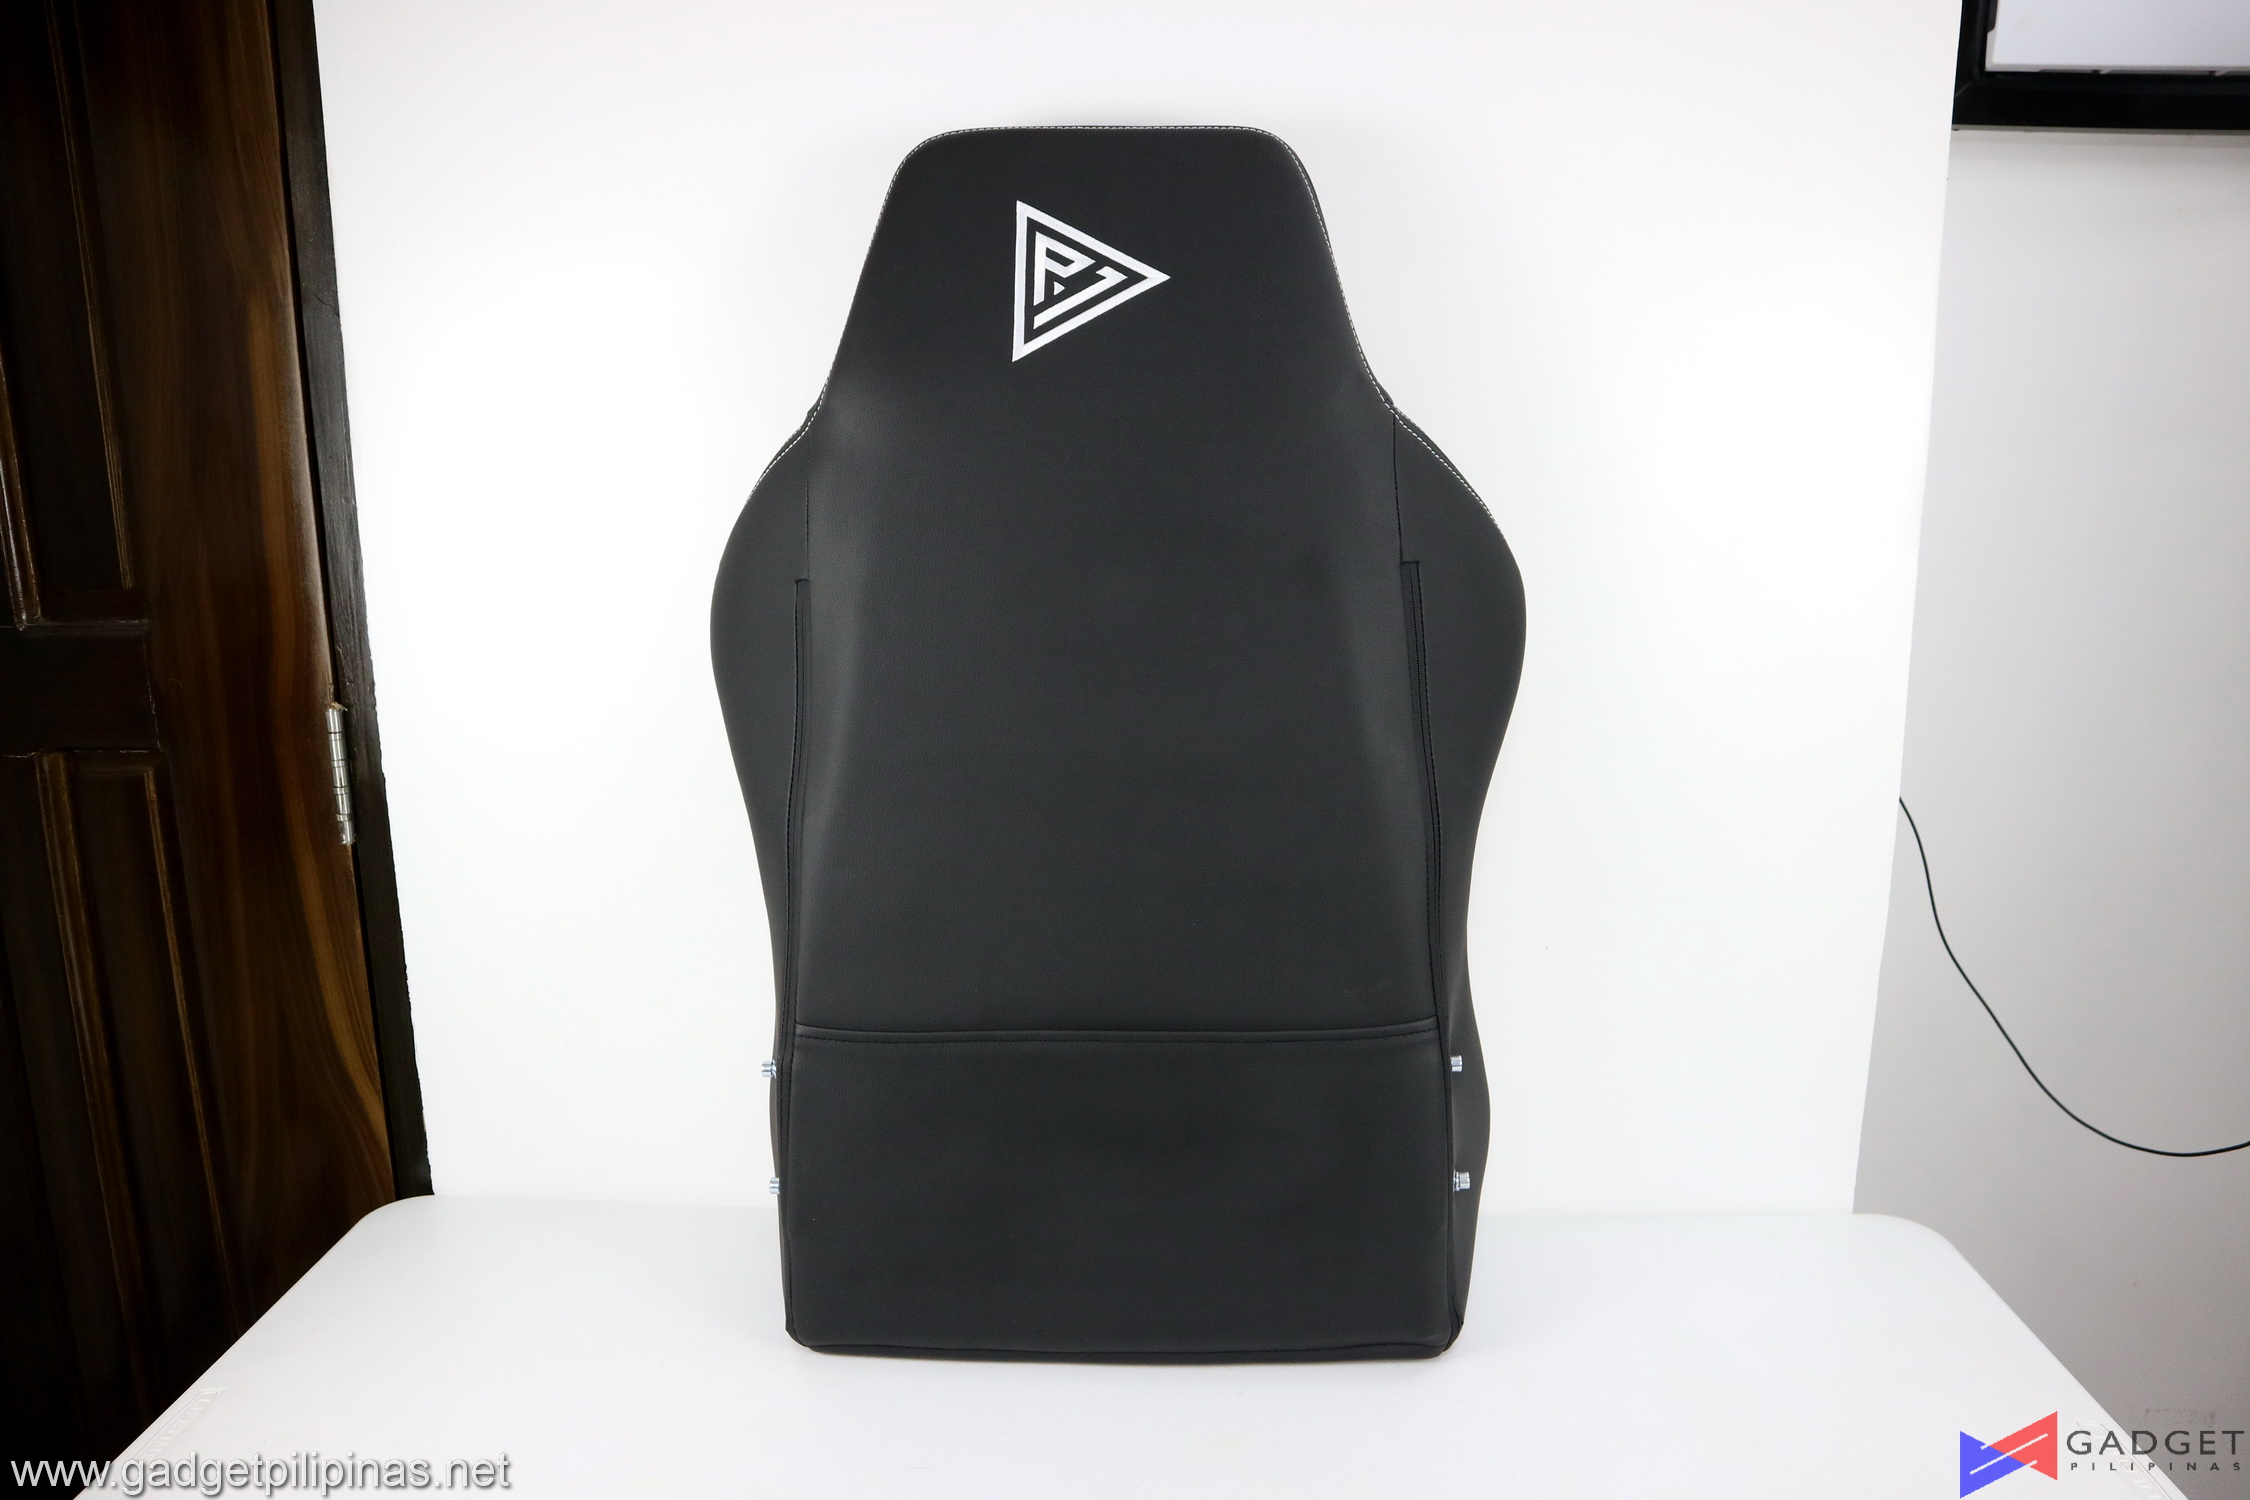 Player One Ghost v2 Gaming Chair Review 028